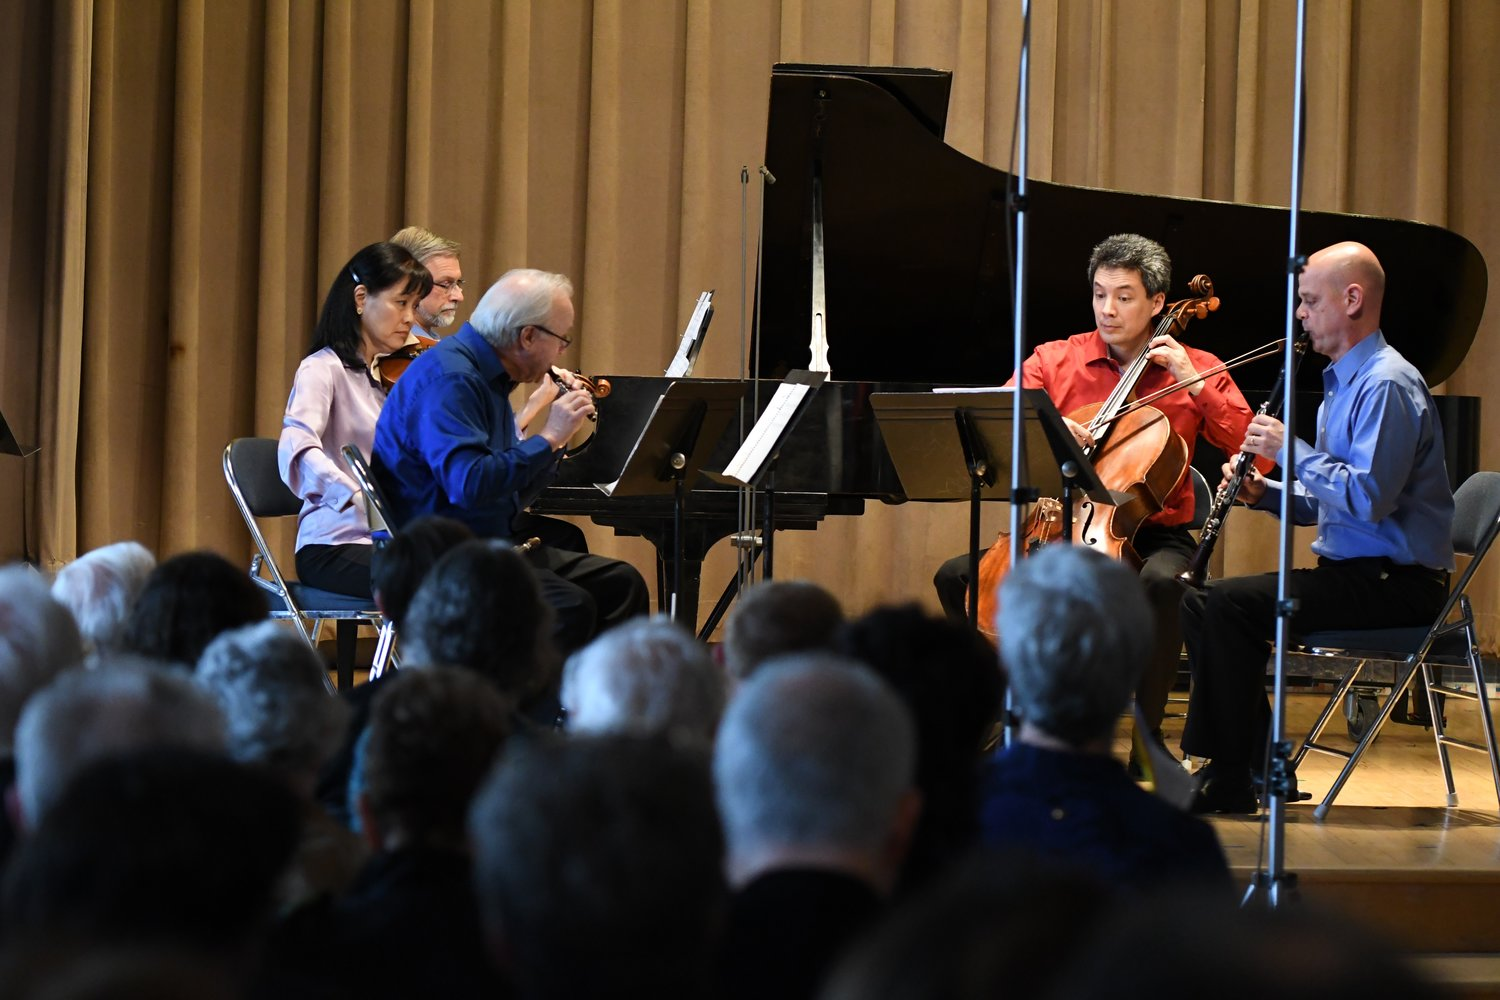 Settlement Music School students were recently featured in a Network for New Music Concert